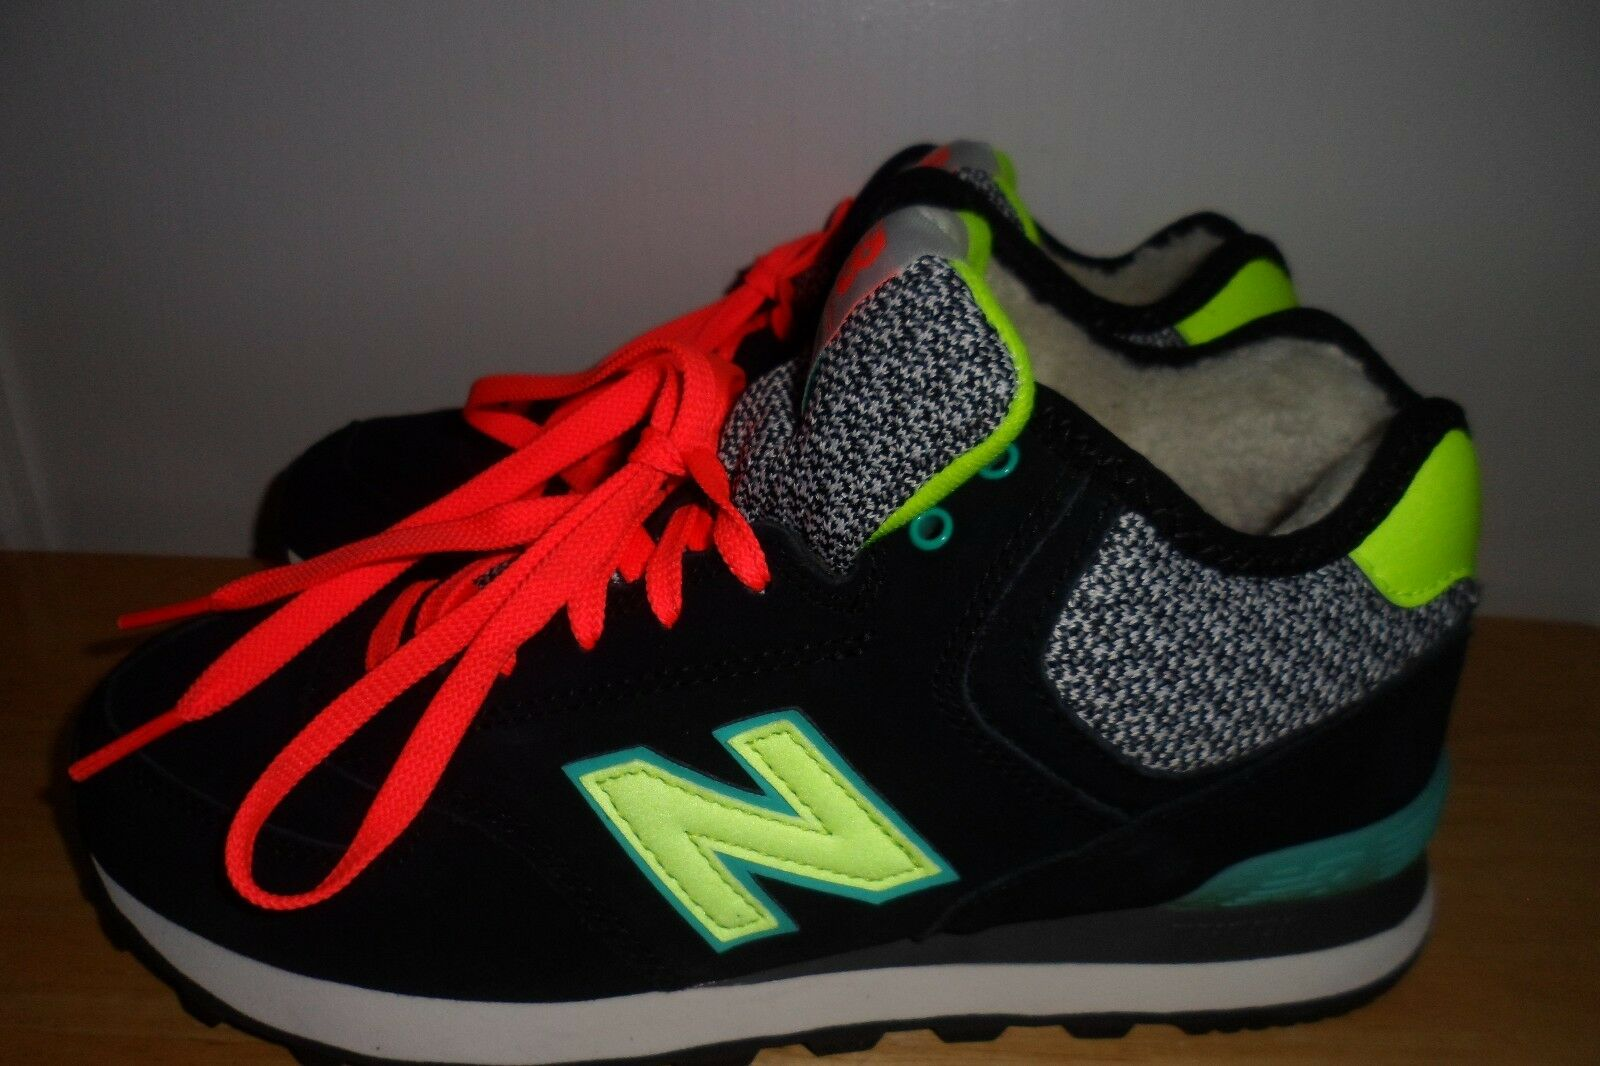 MUST SEE 2016 New Balance 574 WH574WA SHOES WOMENS 8.5 B MINT CONDITION LN